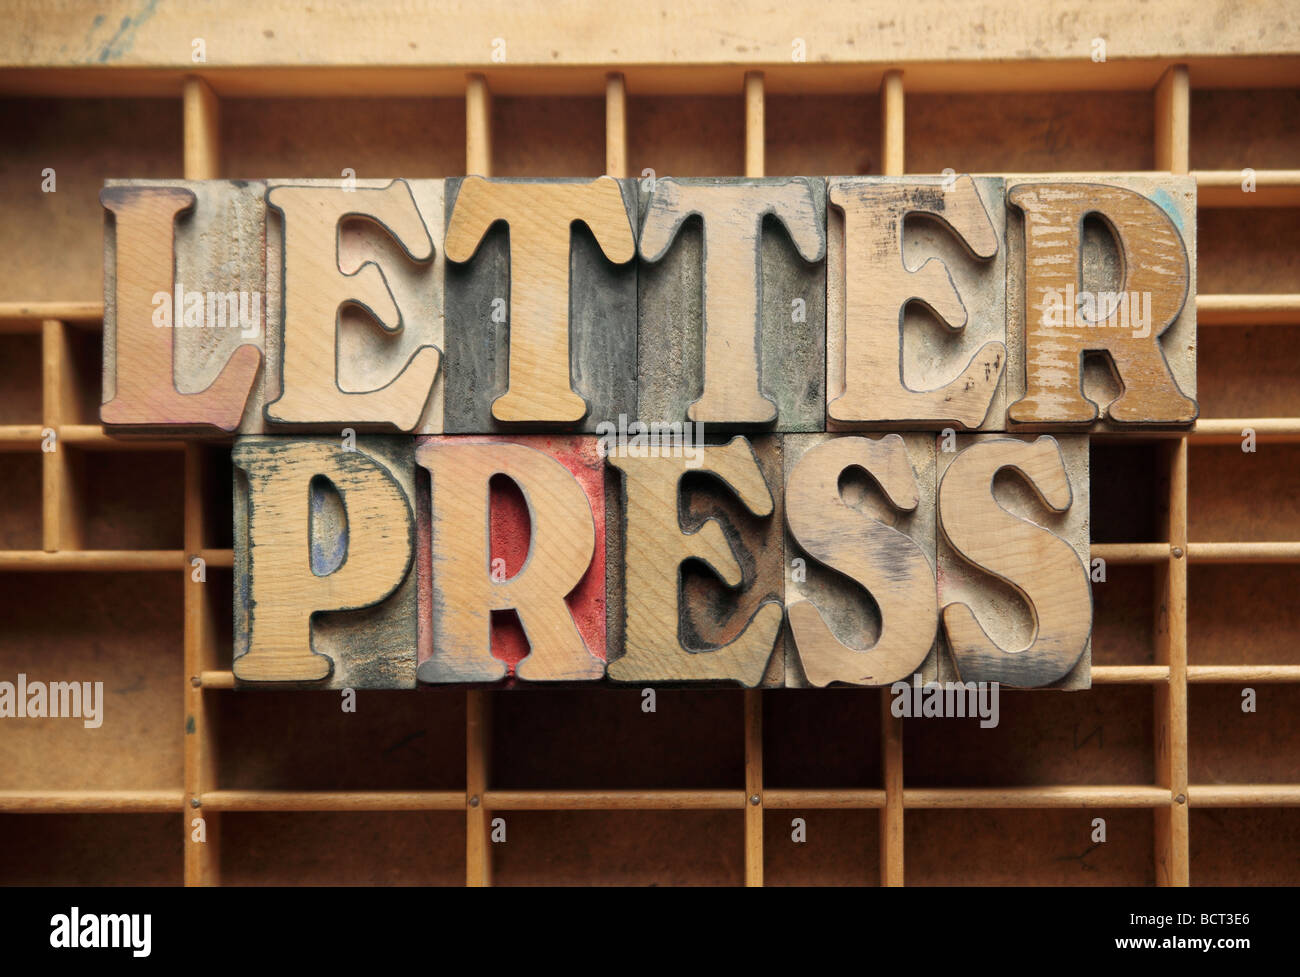 the word 'letterpress' on a type case - Stock Image